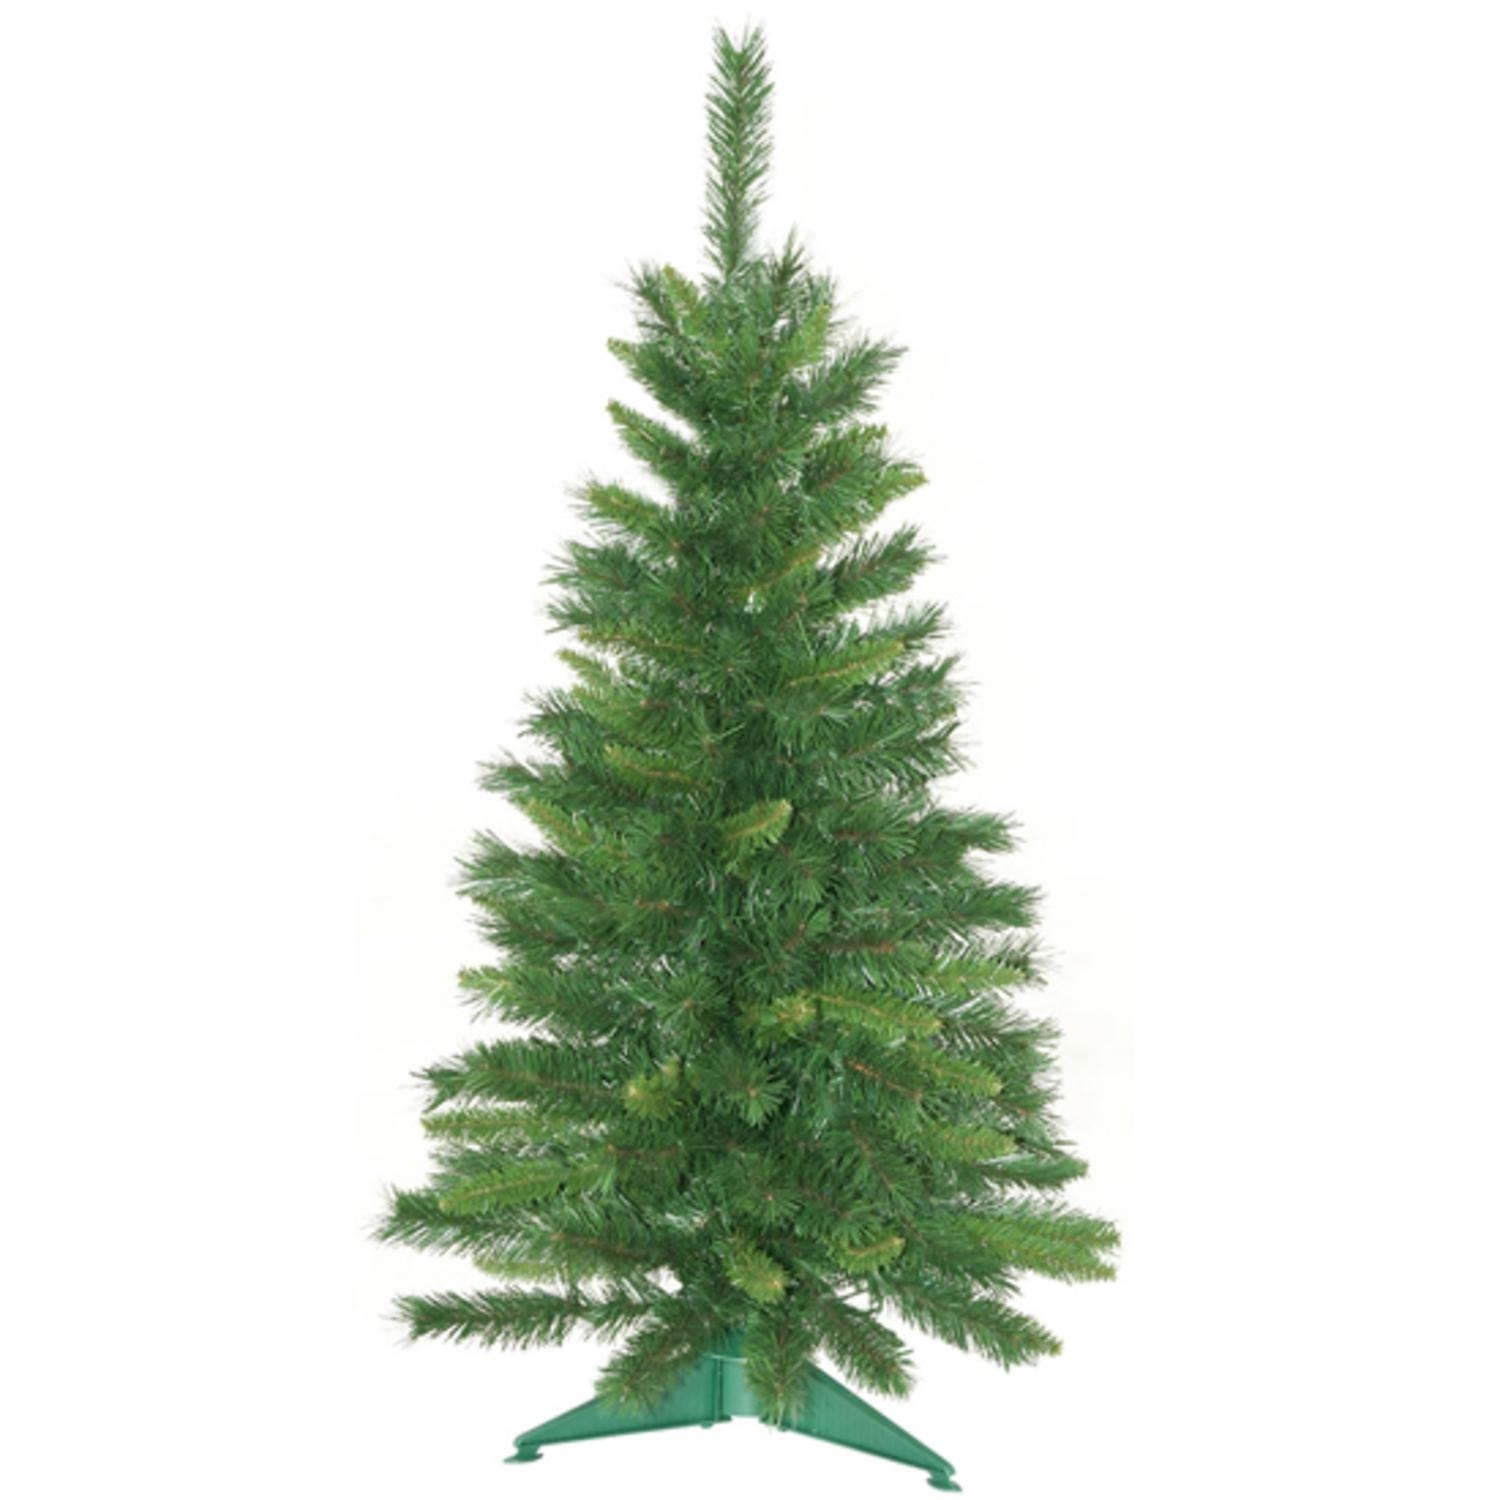 3.5' Imperial Pine Artificial Christmas Tree - Unlit